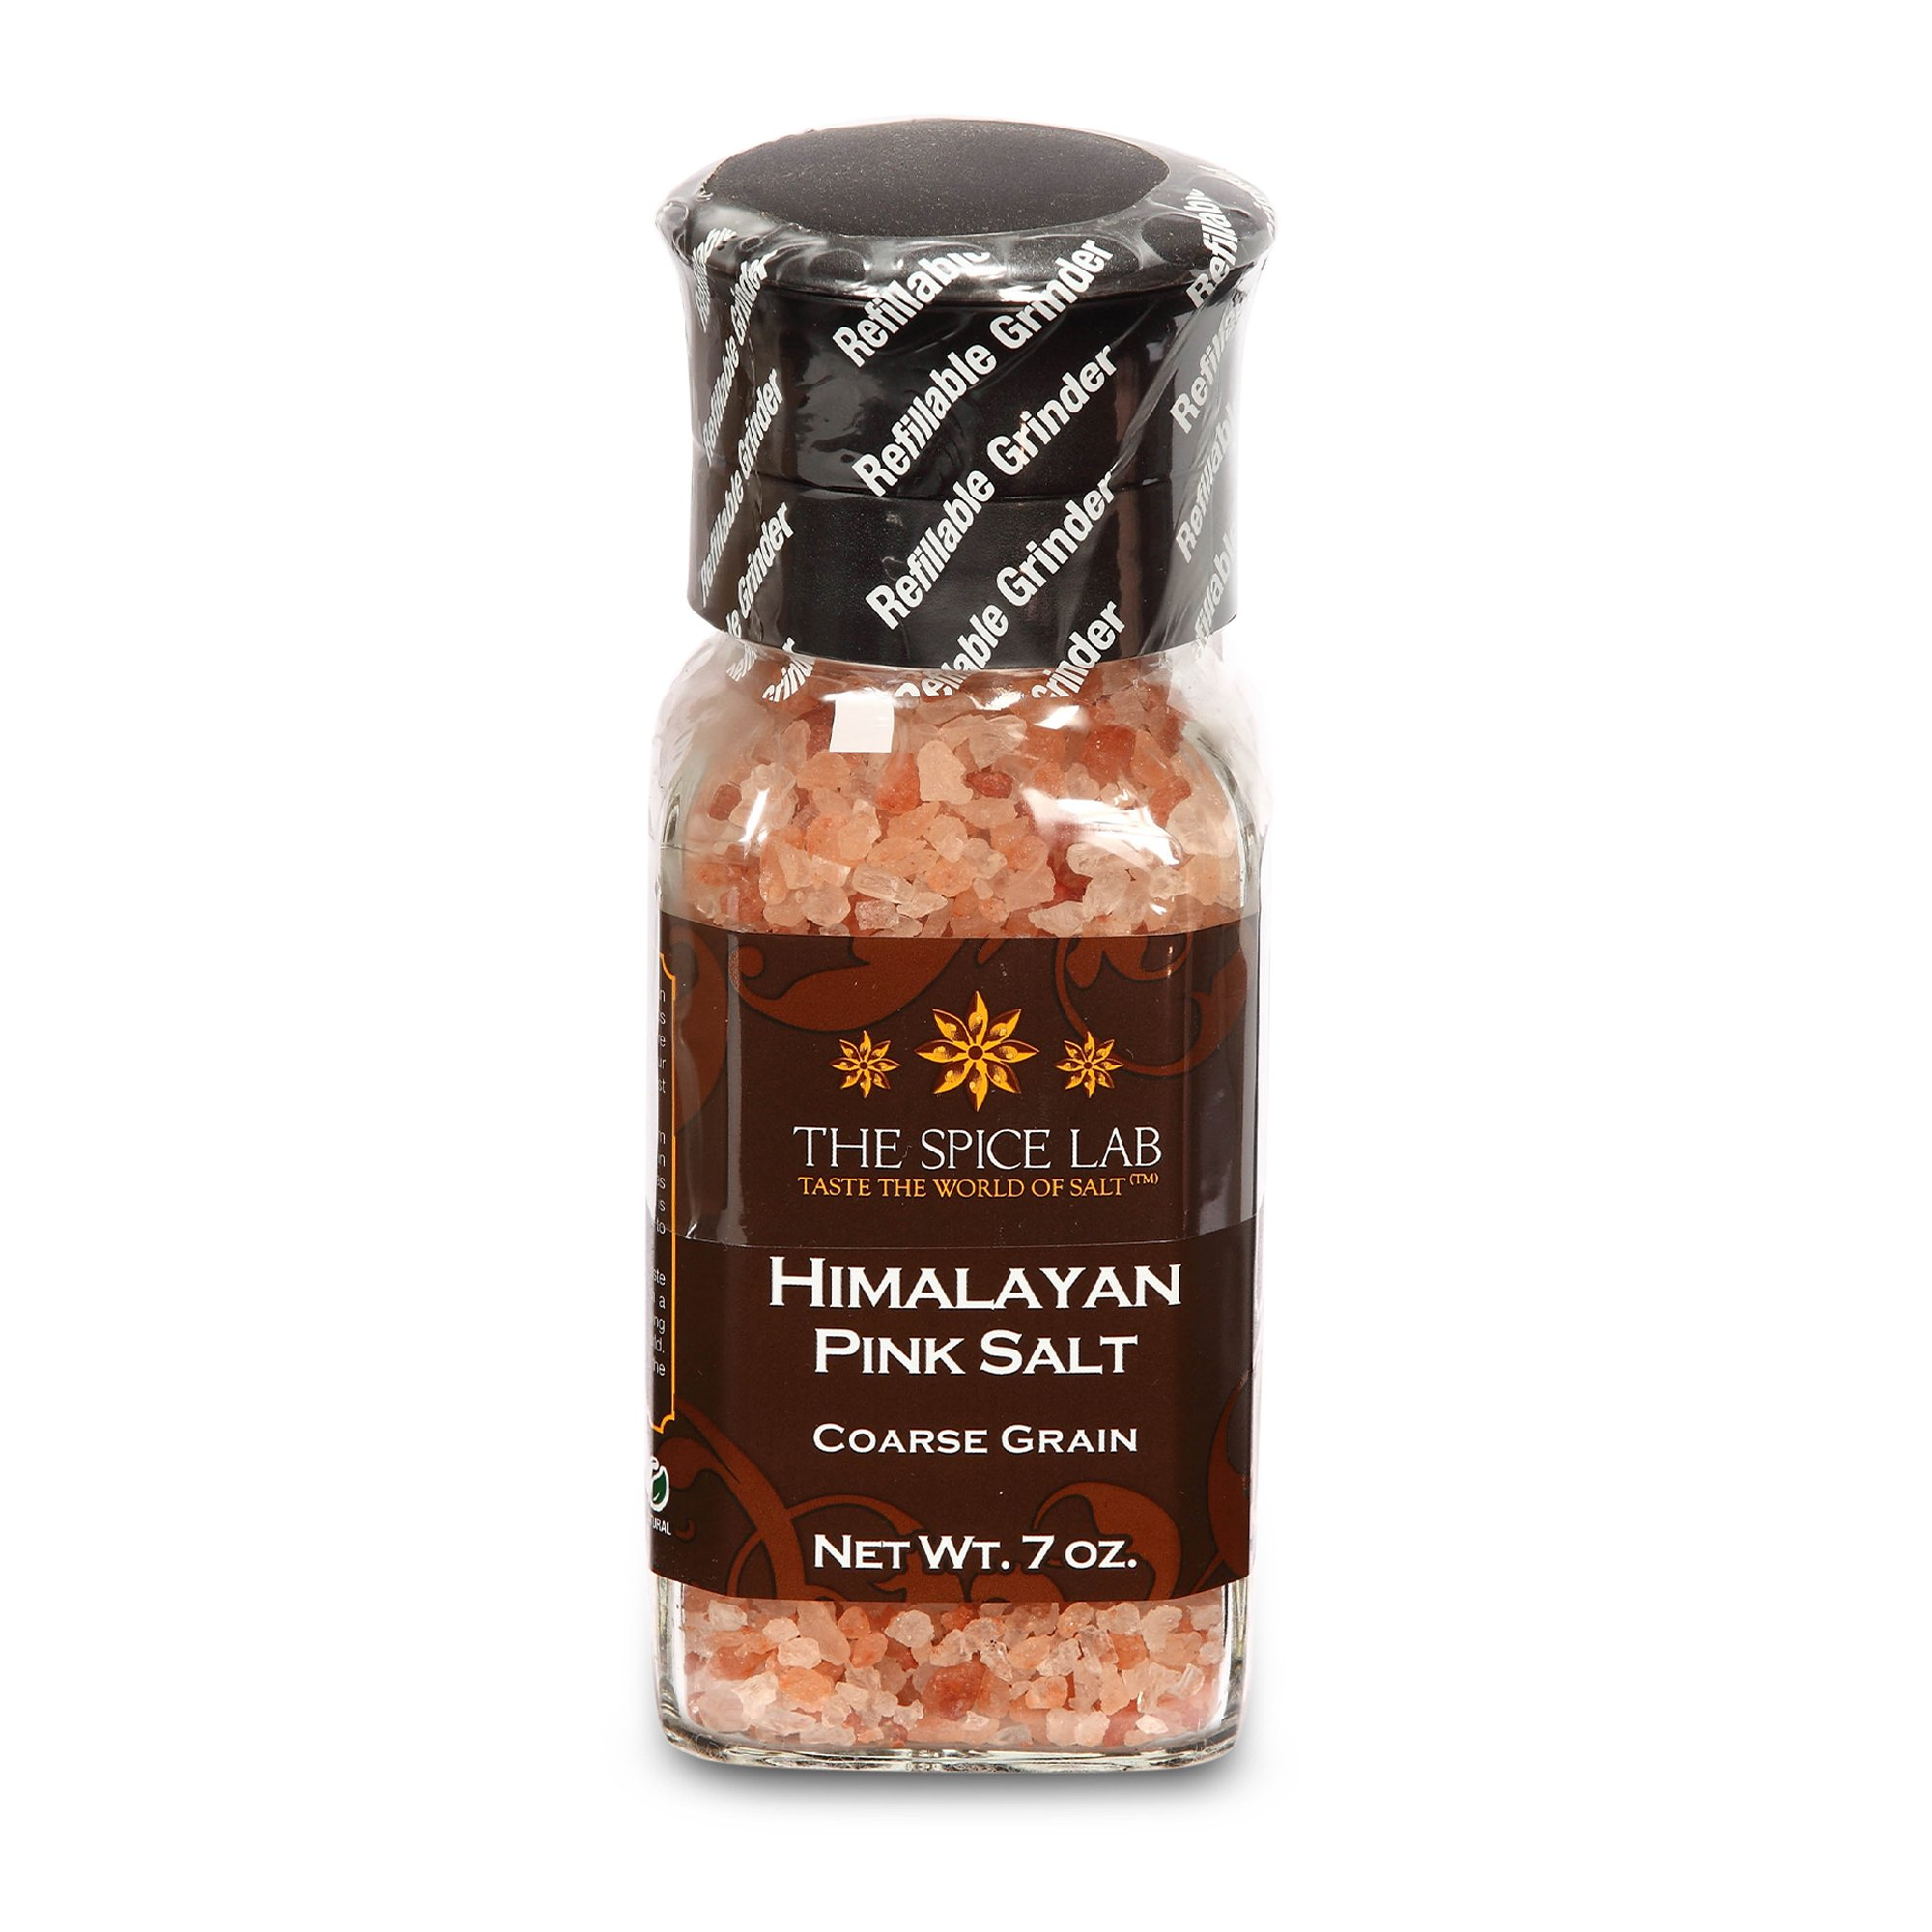 The Spice Lab Pink Himalayan Coarse Salt - Gourmet Pure Crystal - Nutrient and Mineral Fortified for Health - Kosher and Natural Certified - 4.5oz Grinder